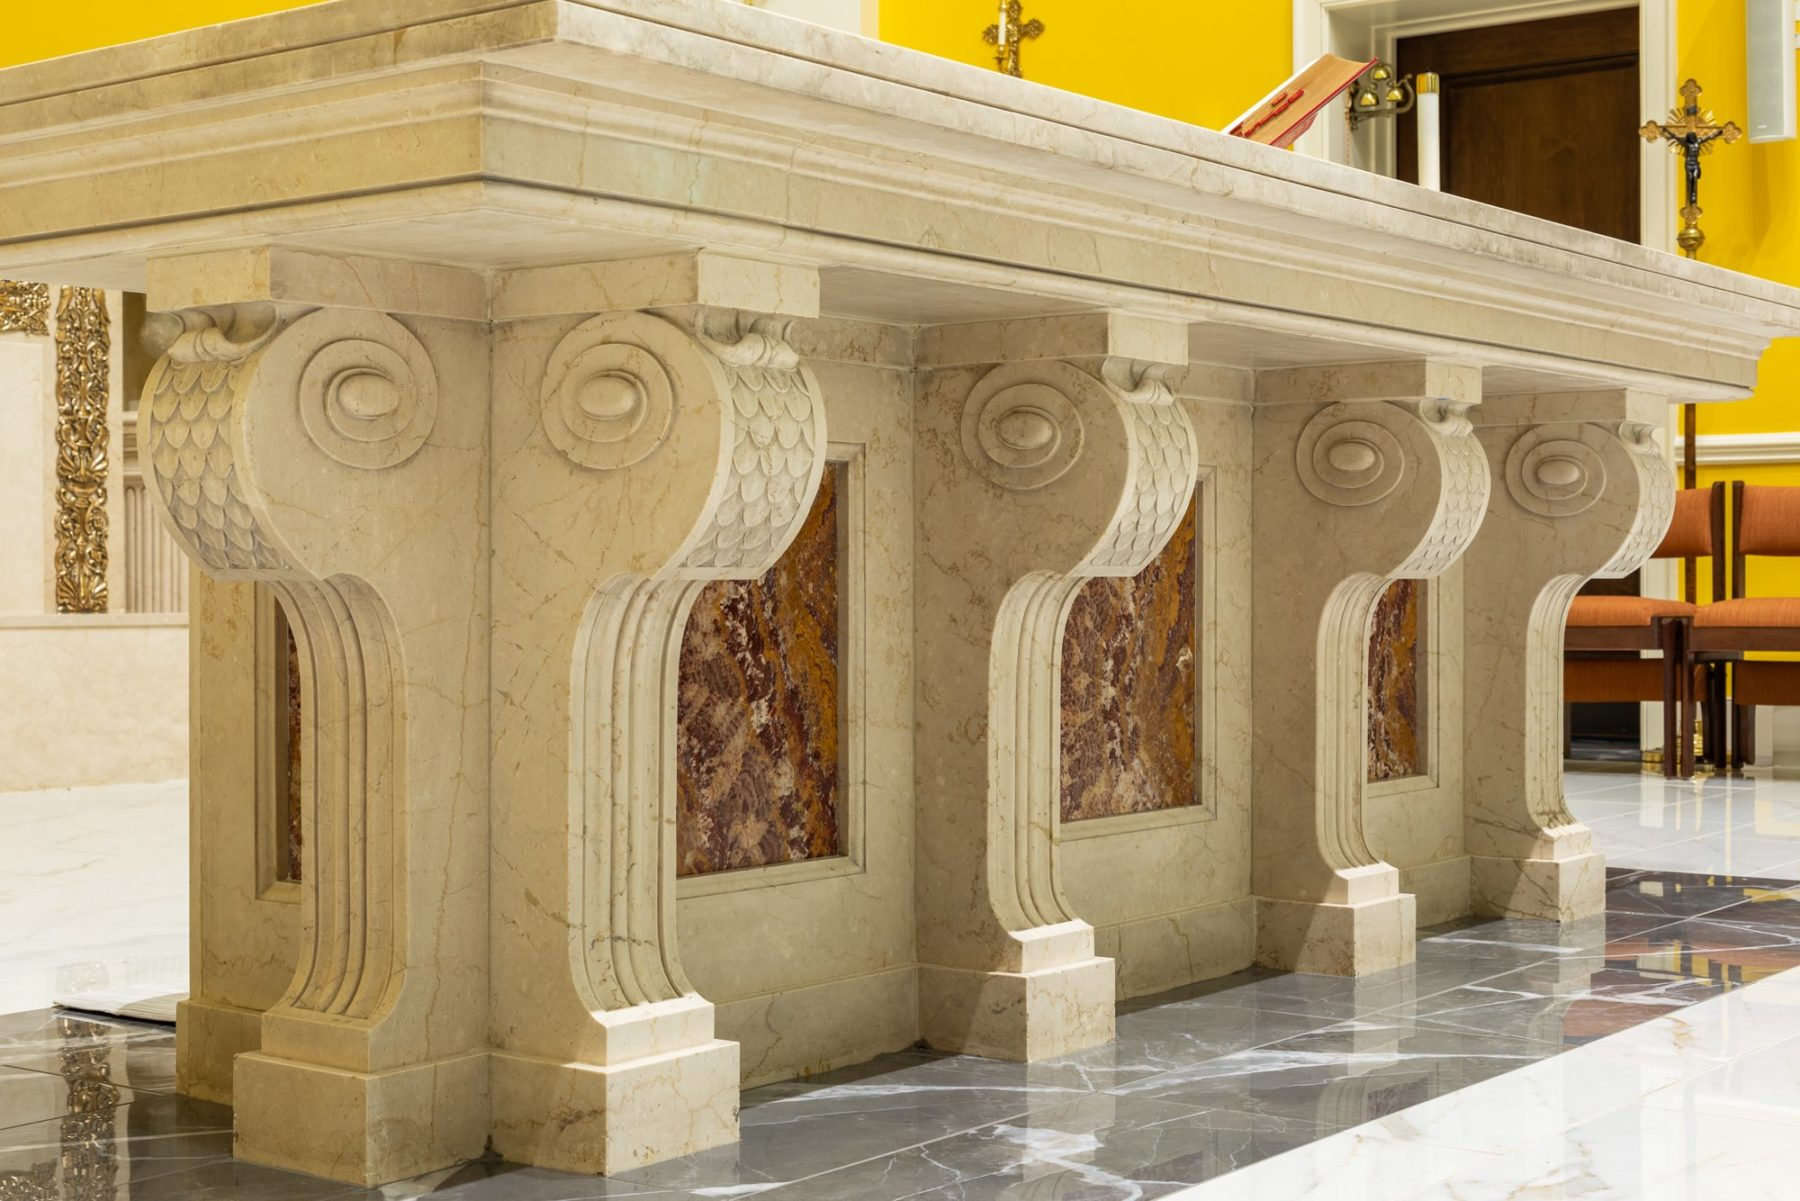 Fine craftsmanship marble and granite scrolls on marble altar with classical details and panels architecture by Harrison Design